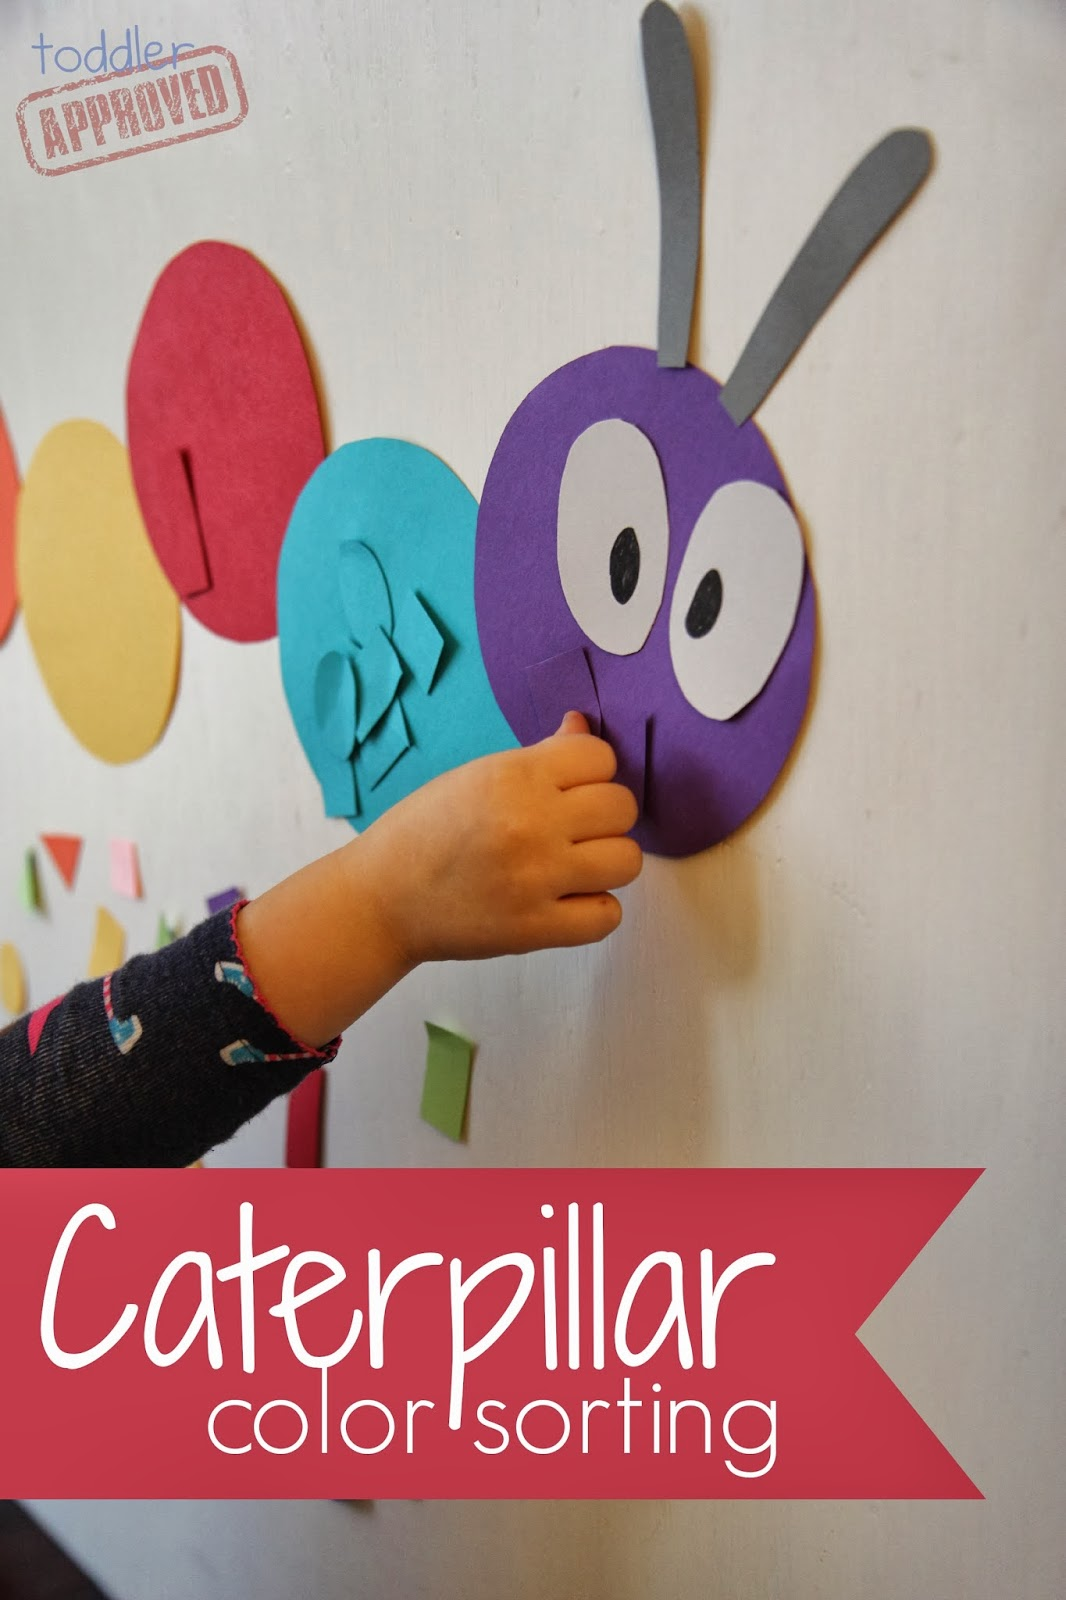 Toddler Approved Caterpillar Color Sorting